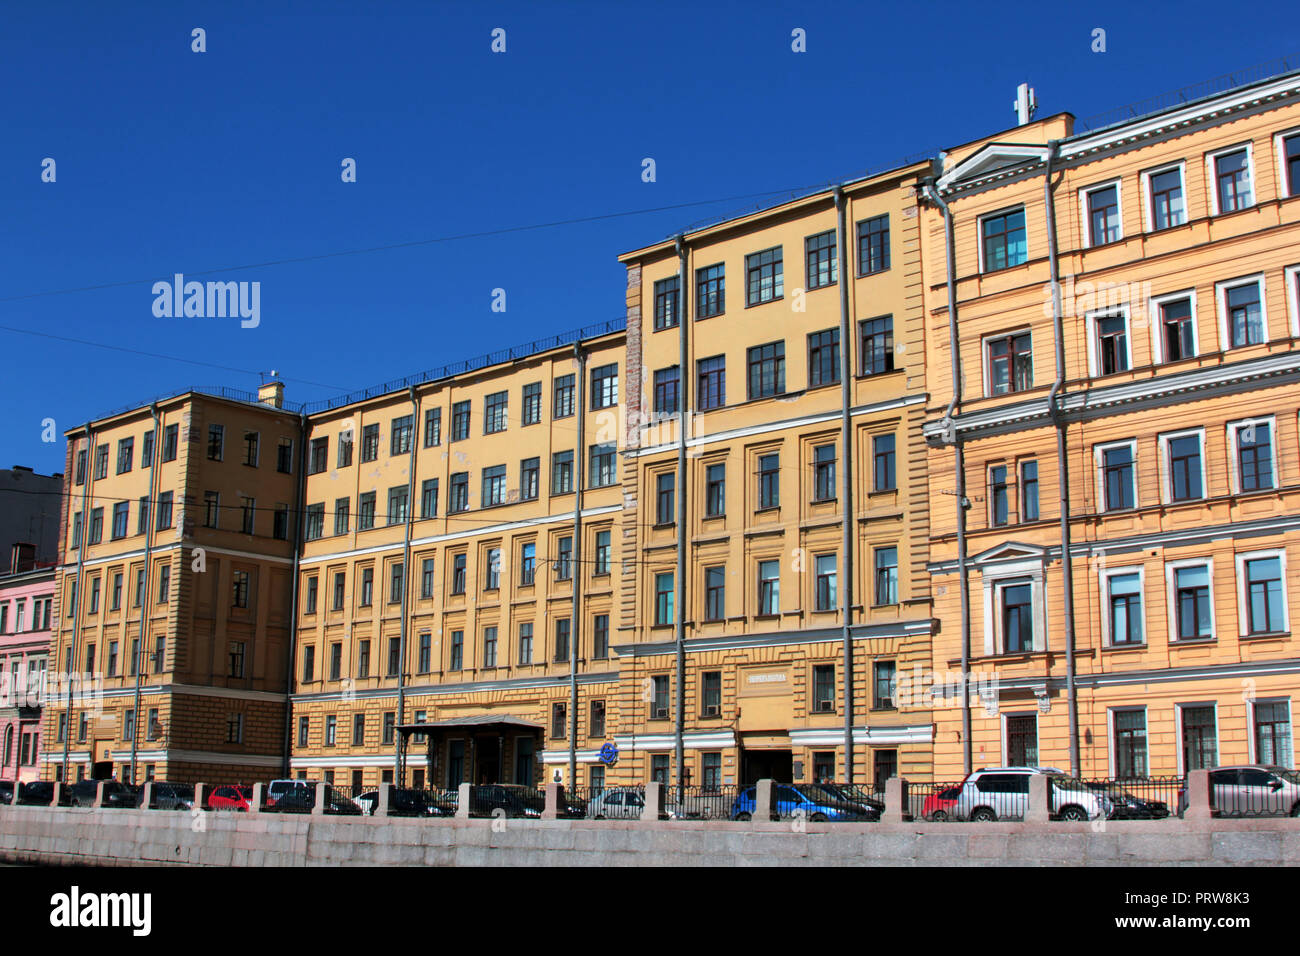 A large, grand, orderly, colourful and pristine façade of a building in St Petersburg, Russia. - Stock Image